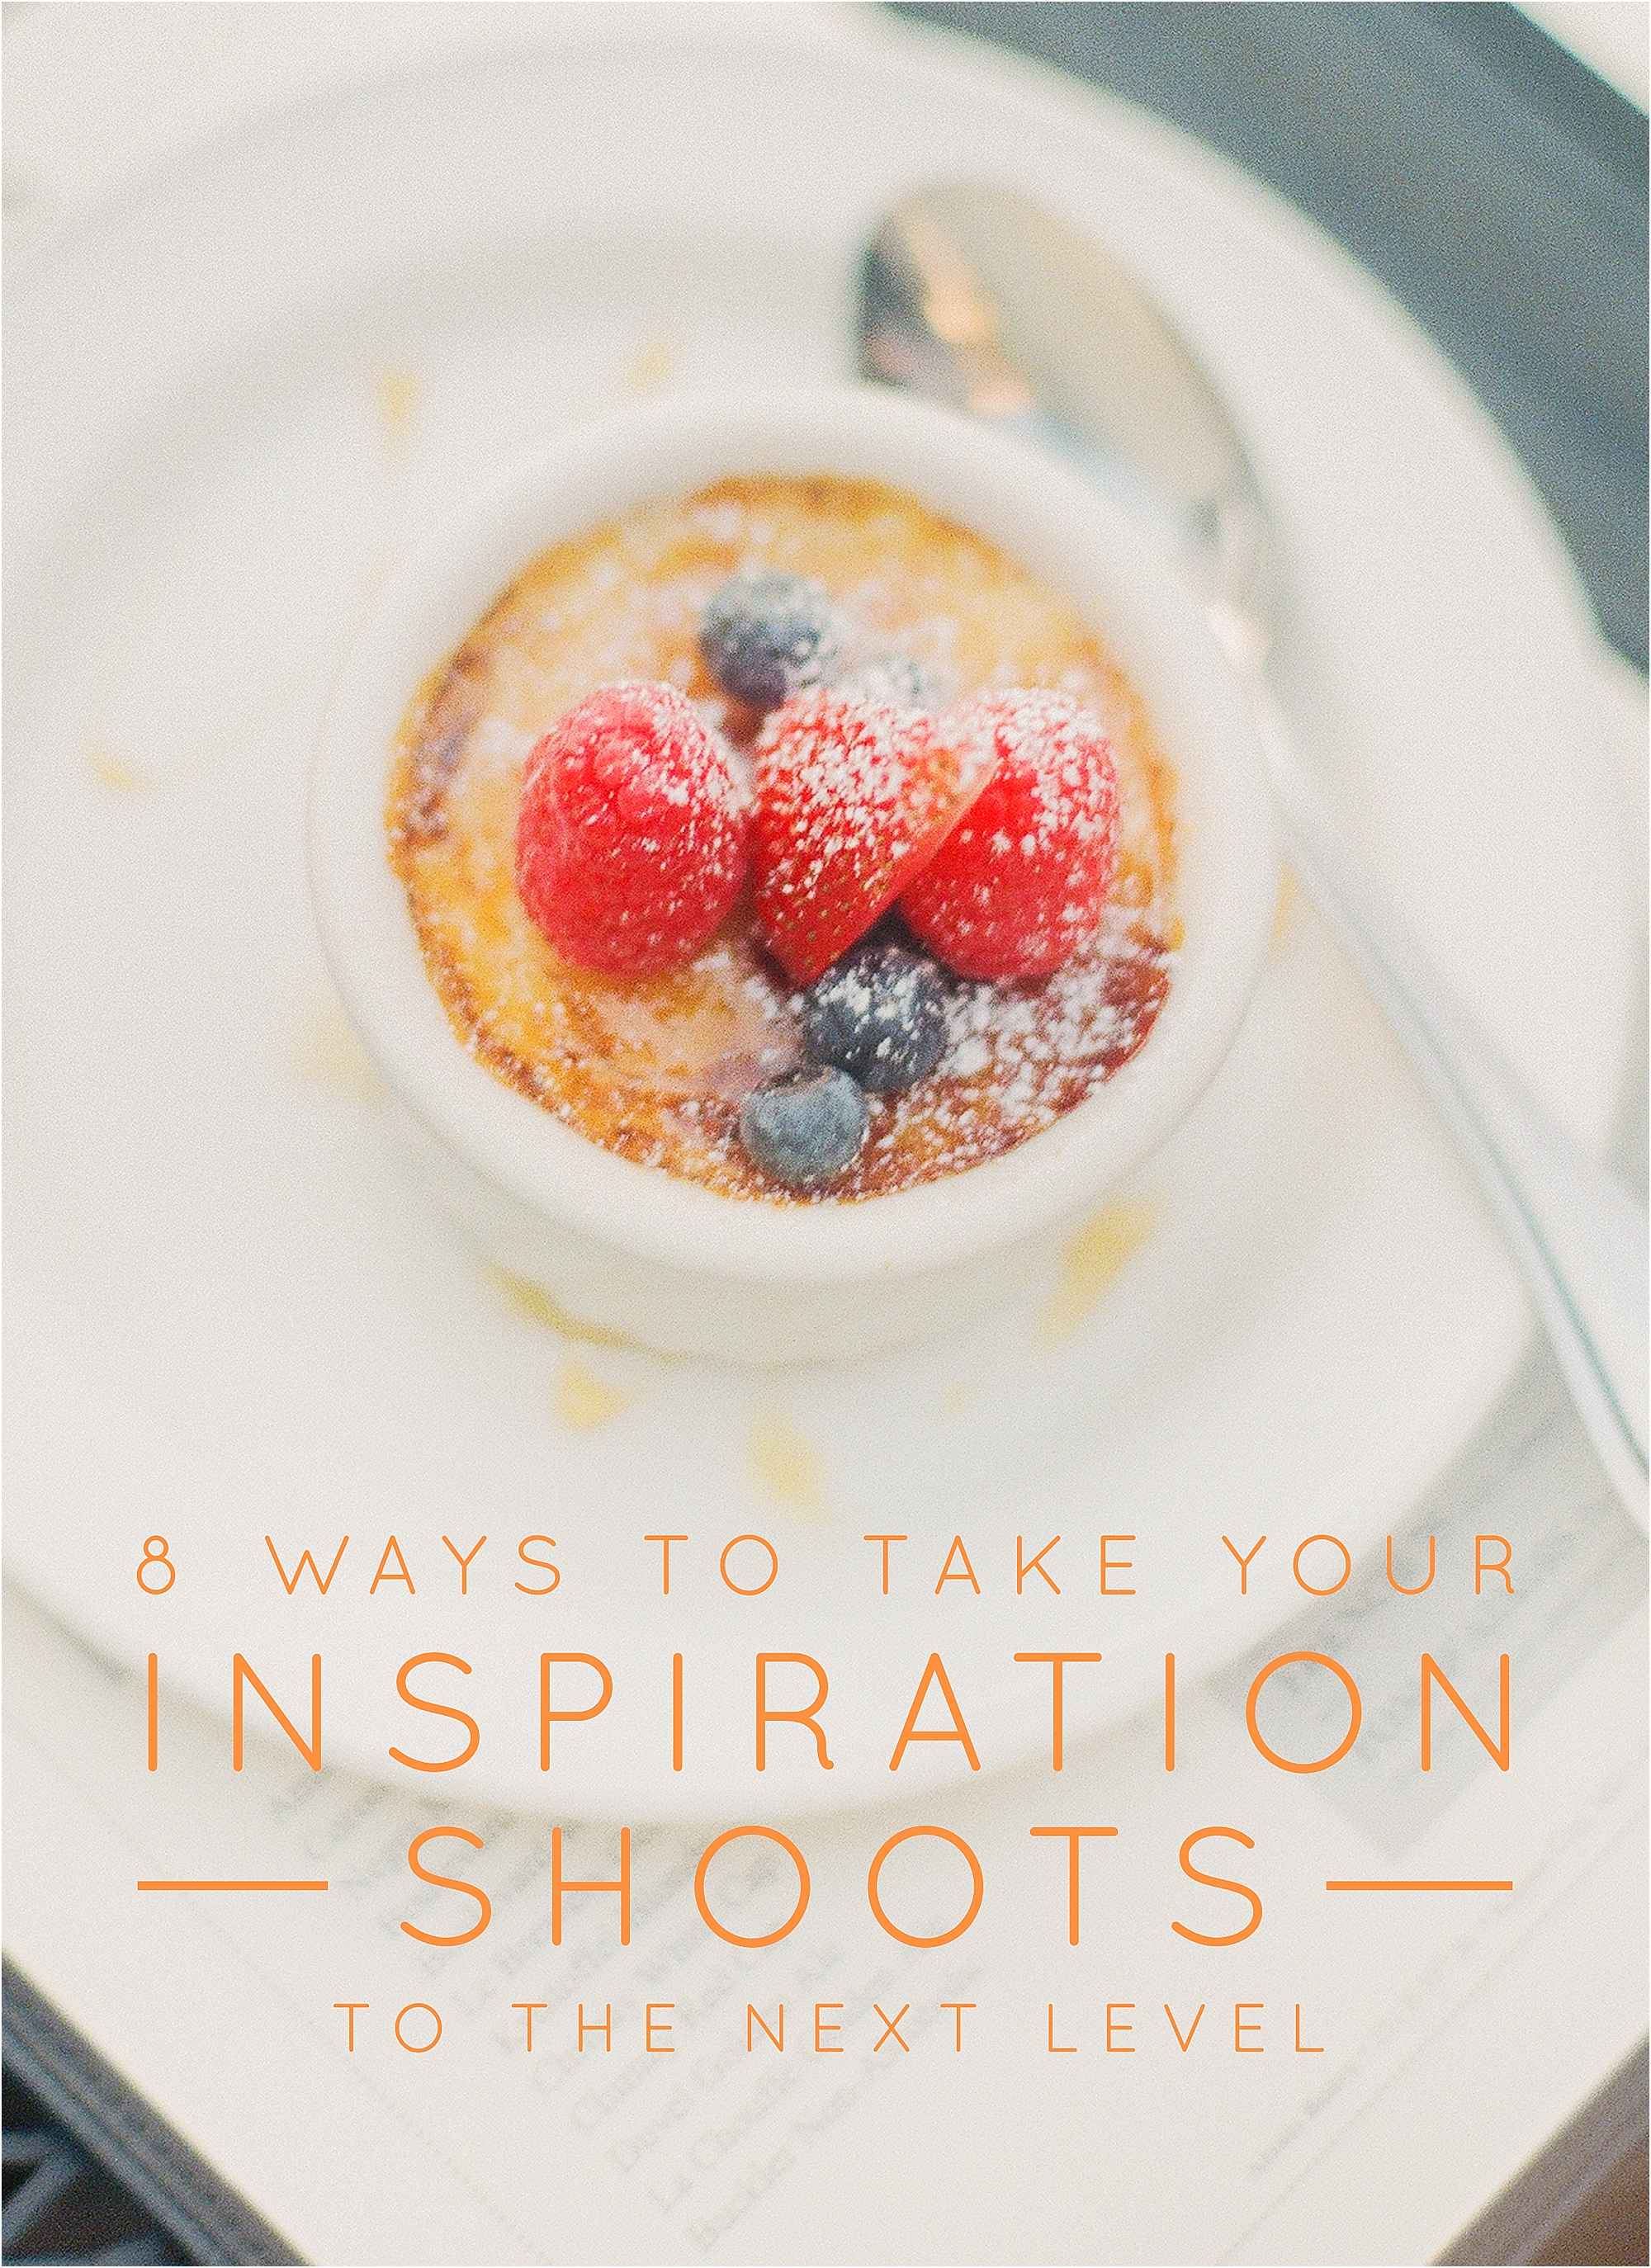 8 Ways to Take Your Inspiration Shoots to the Next Level - The Jordan Brittley Blog